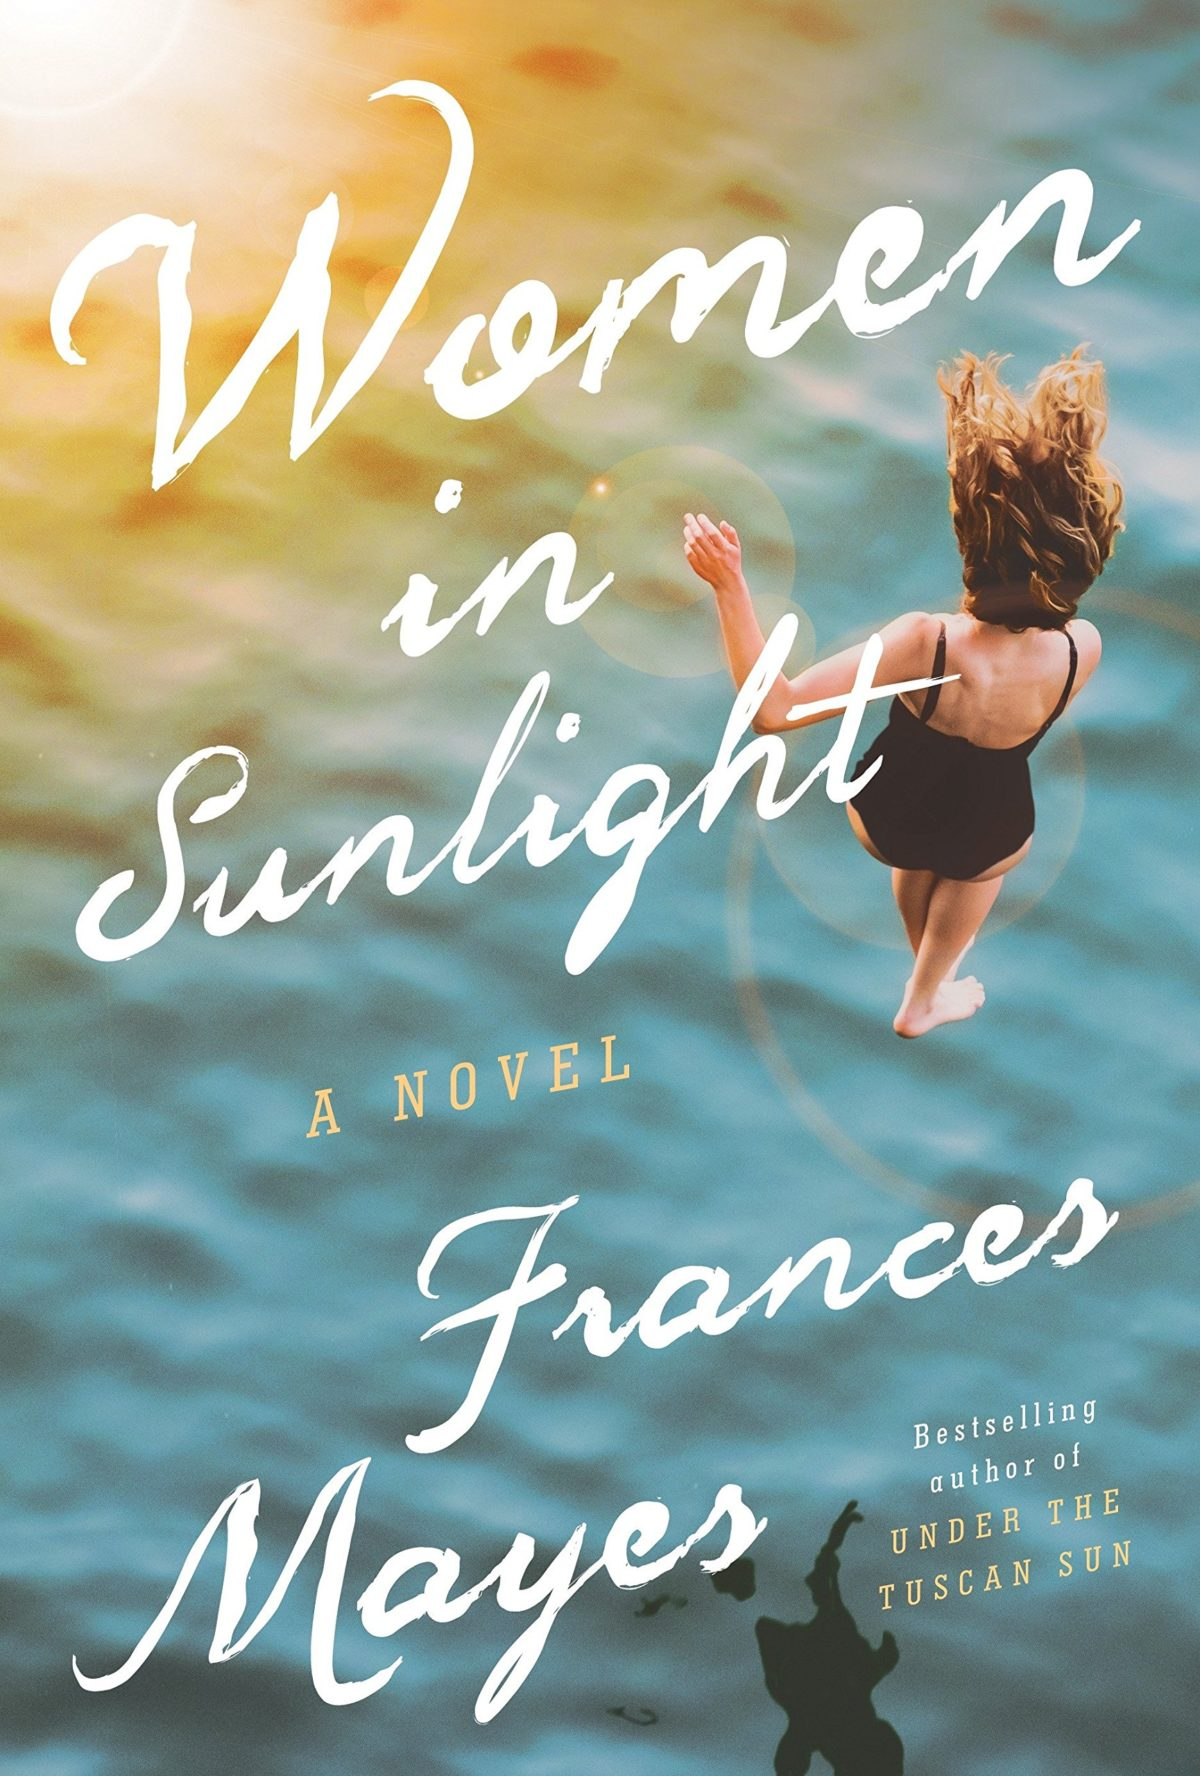 Mrs. Twist Reads This:  Women in Sunlight